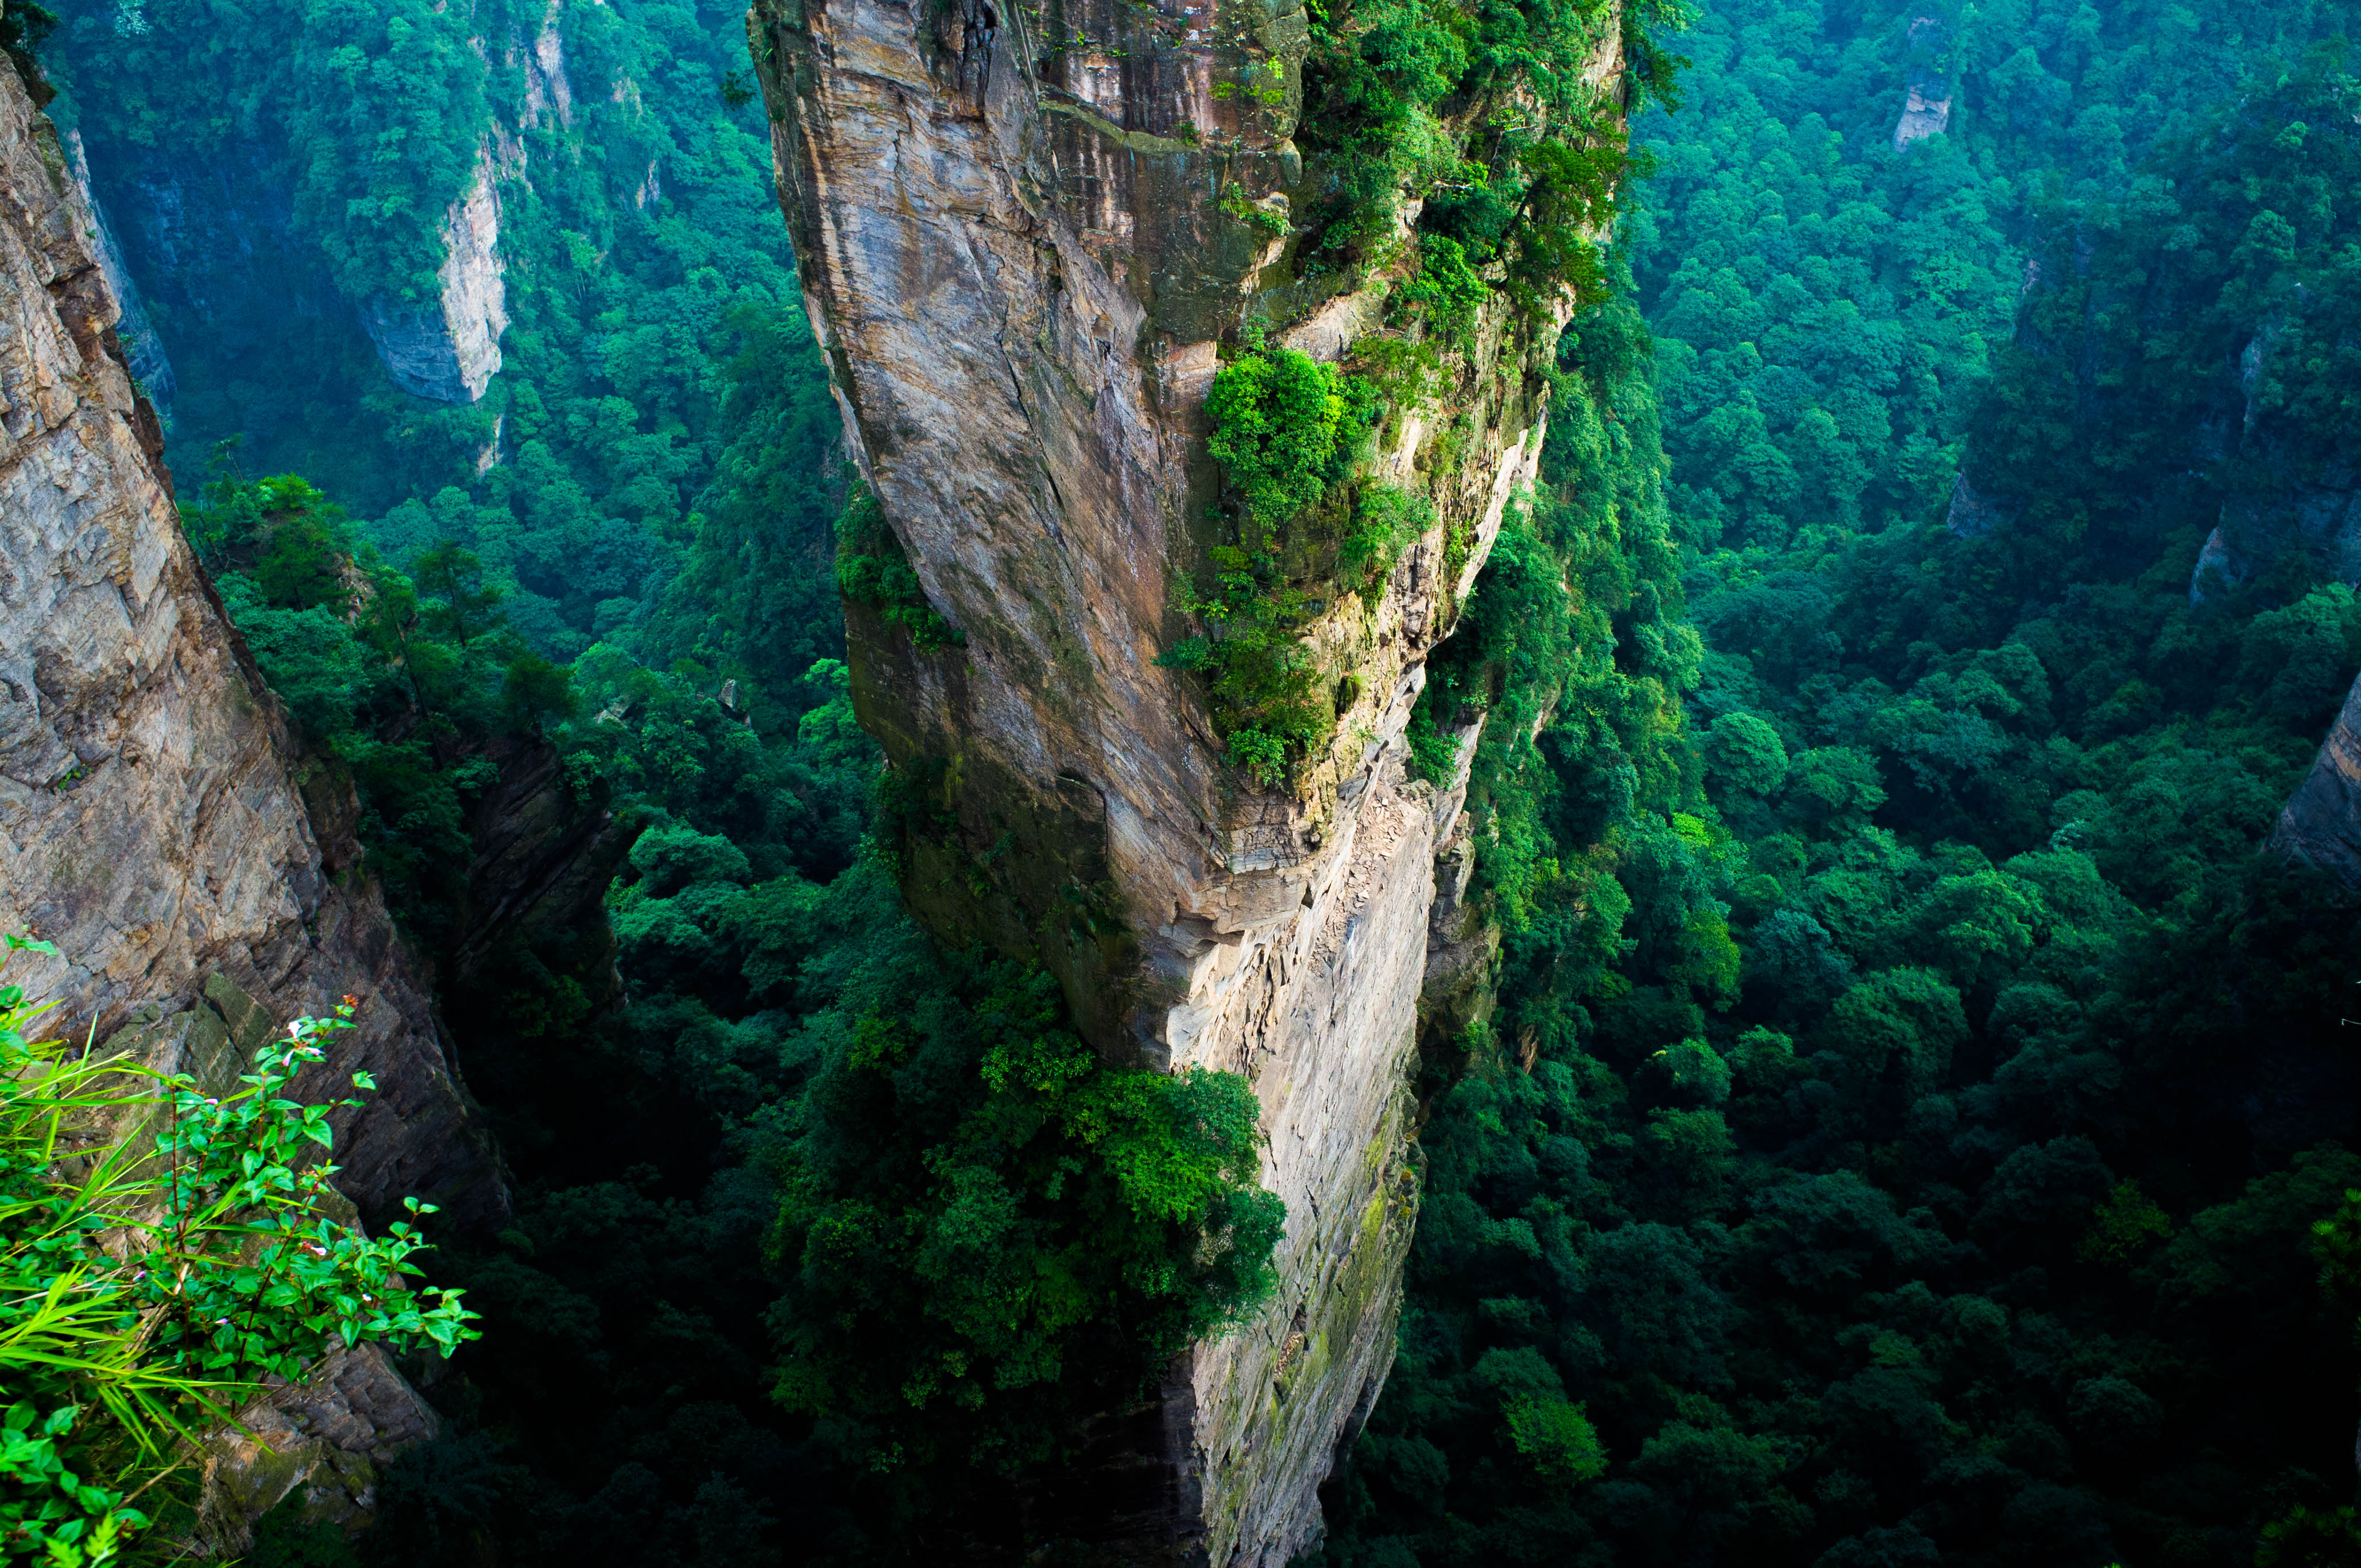 Chinese nature, must see and visit, beauty